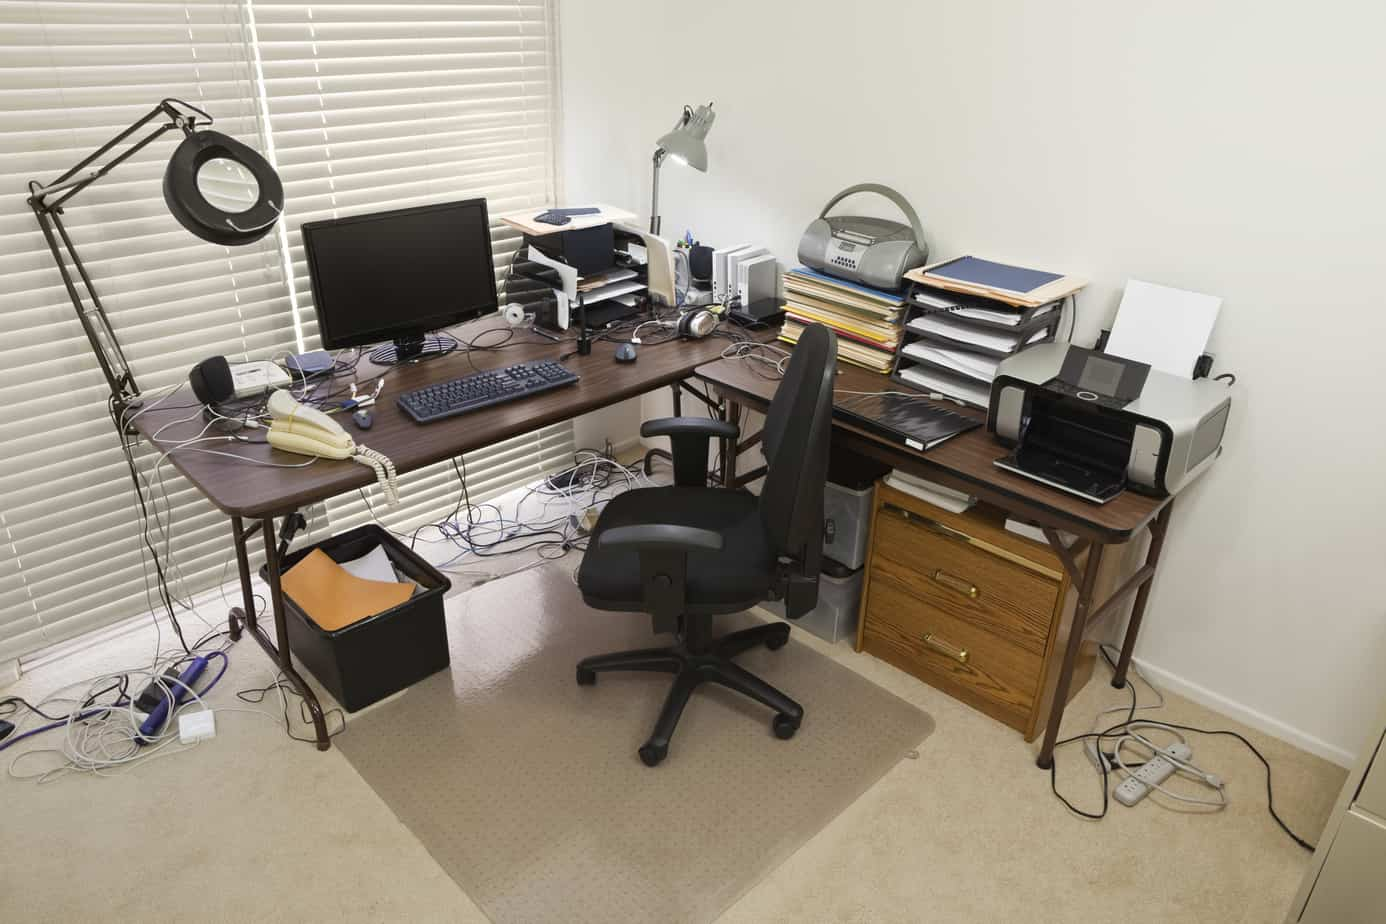 Home Office with Chaotic Cords